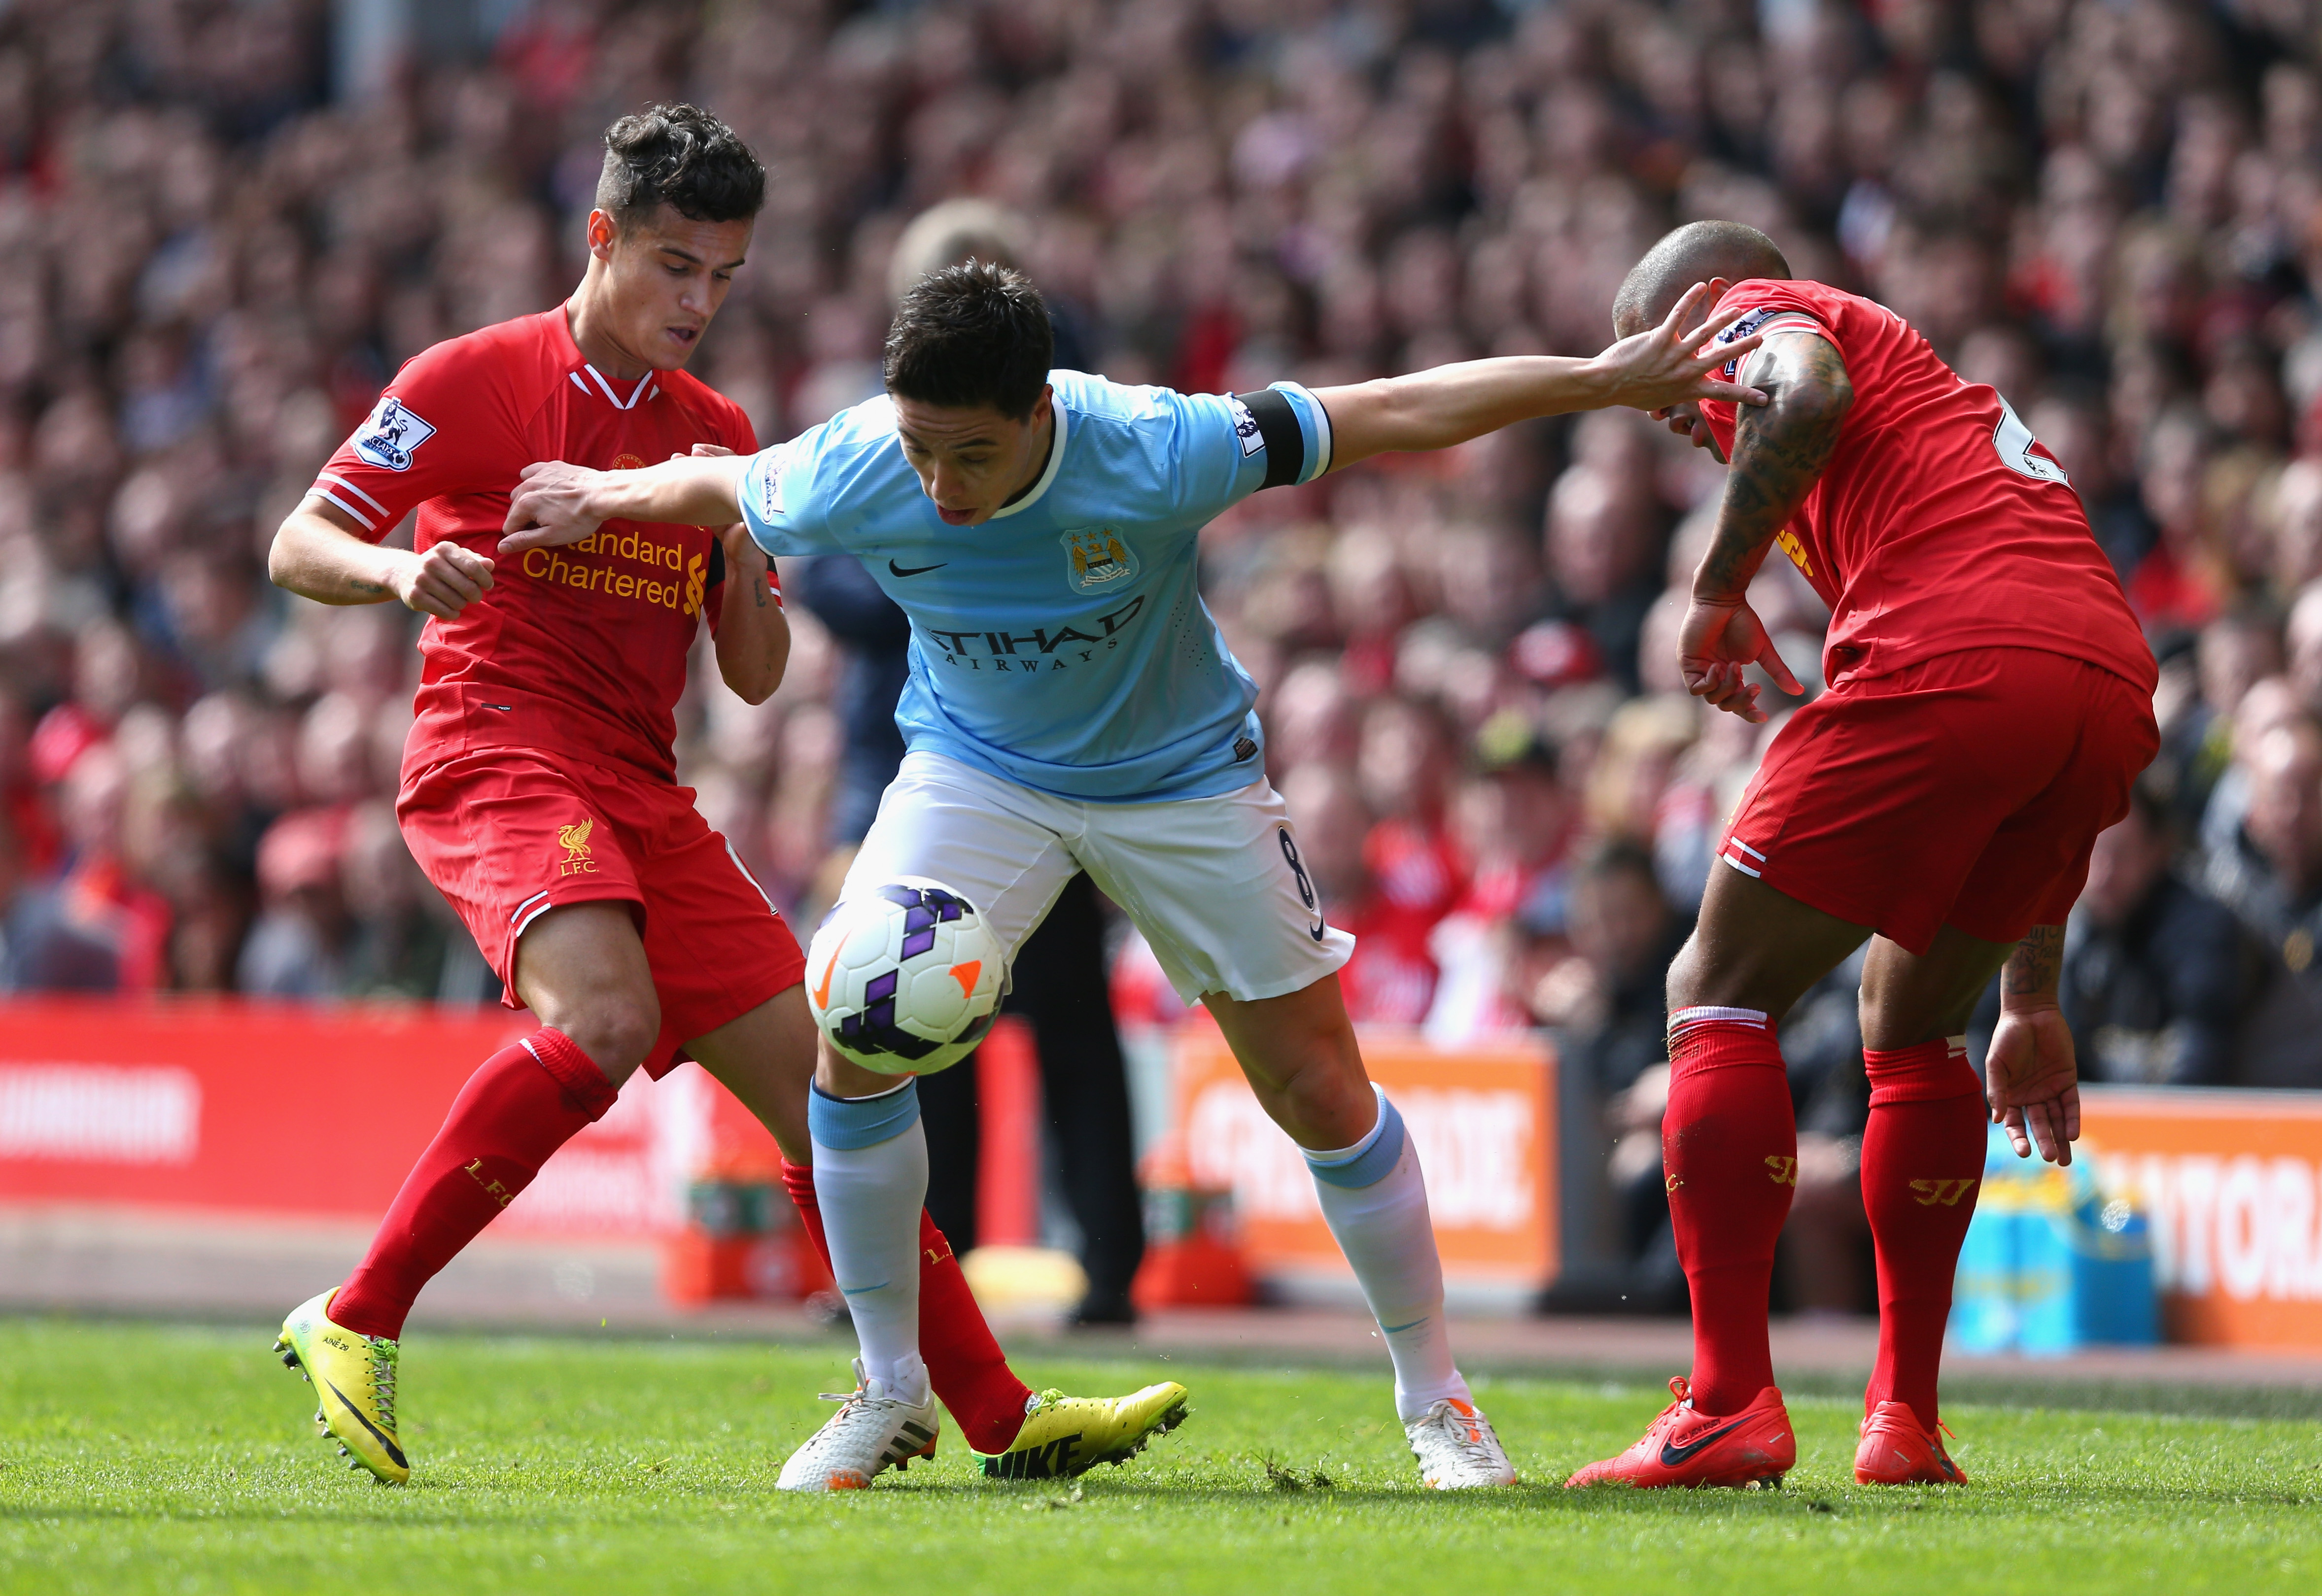 APRIL 13: Philippe Coutinho and Glen Johnson of Liverpool compete with Samir Nasri of Manchester City during the Barclays Premier League match between Liverpool and Manchester City at Anfield on April 13, 2014 in Liverpool, England.